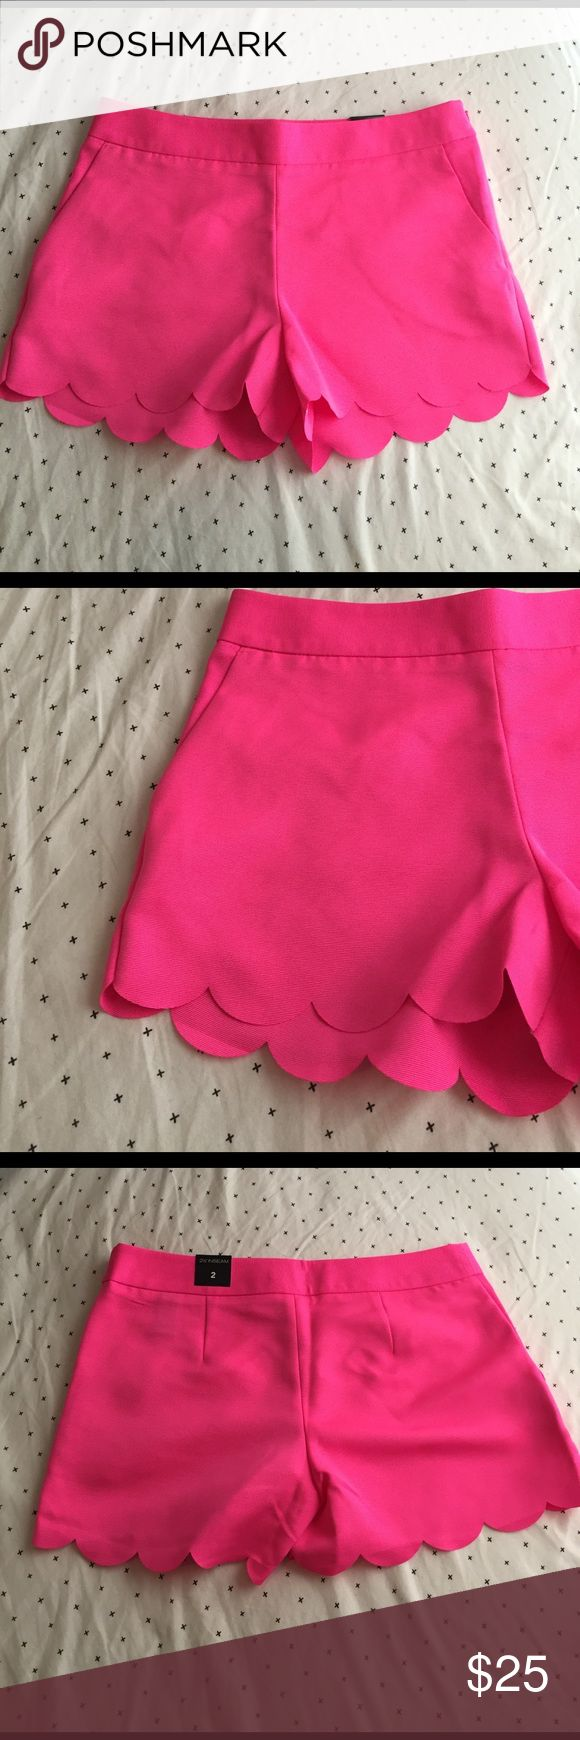 Hot pink scalloped shorts Bundles available! Express Shorts